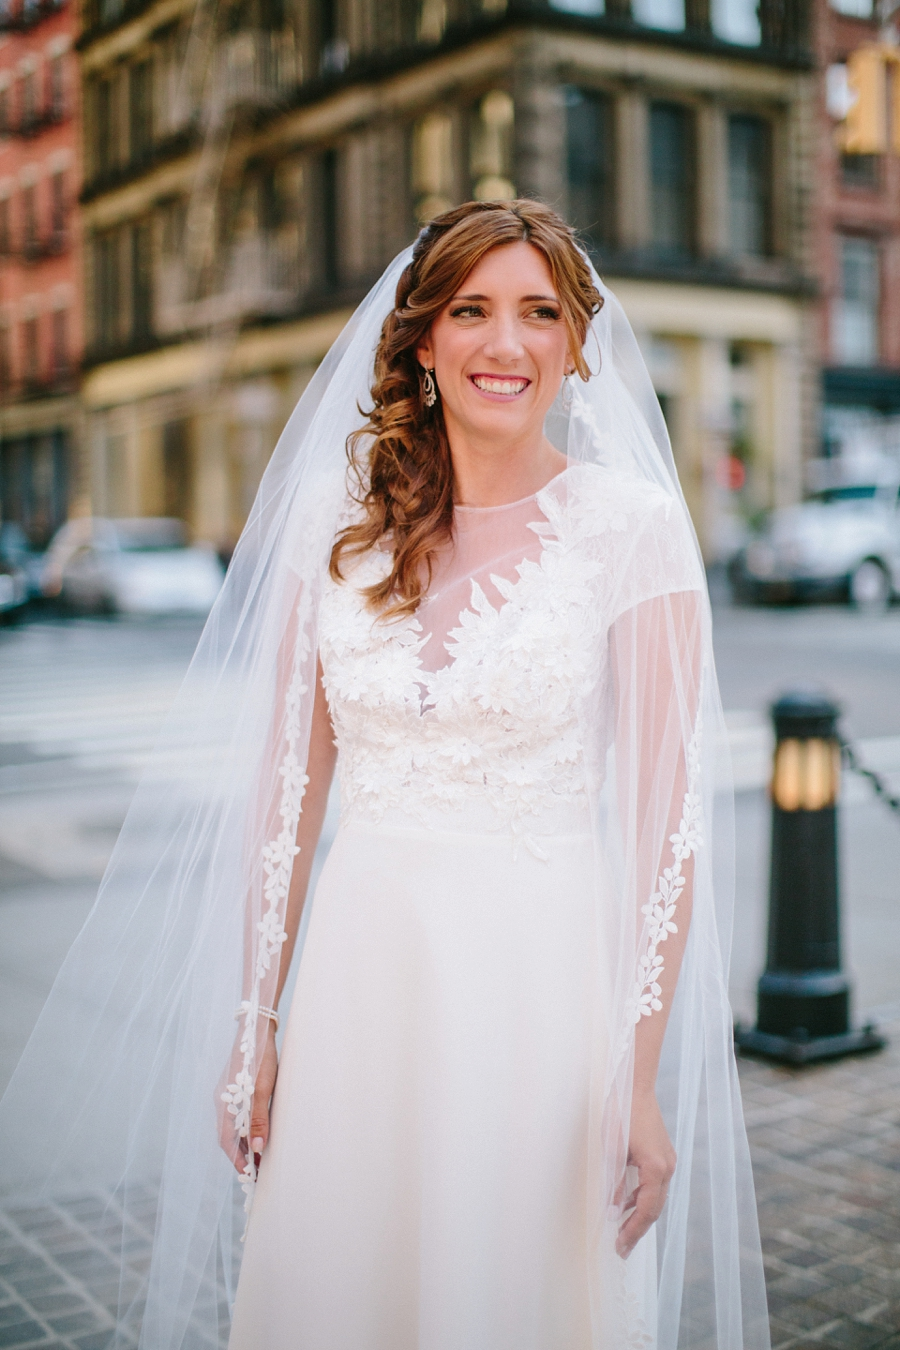 NYC-destination-wedding-photographer-tribeca-intimate-church_0009.jpg